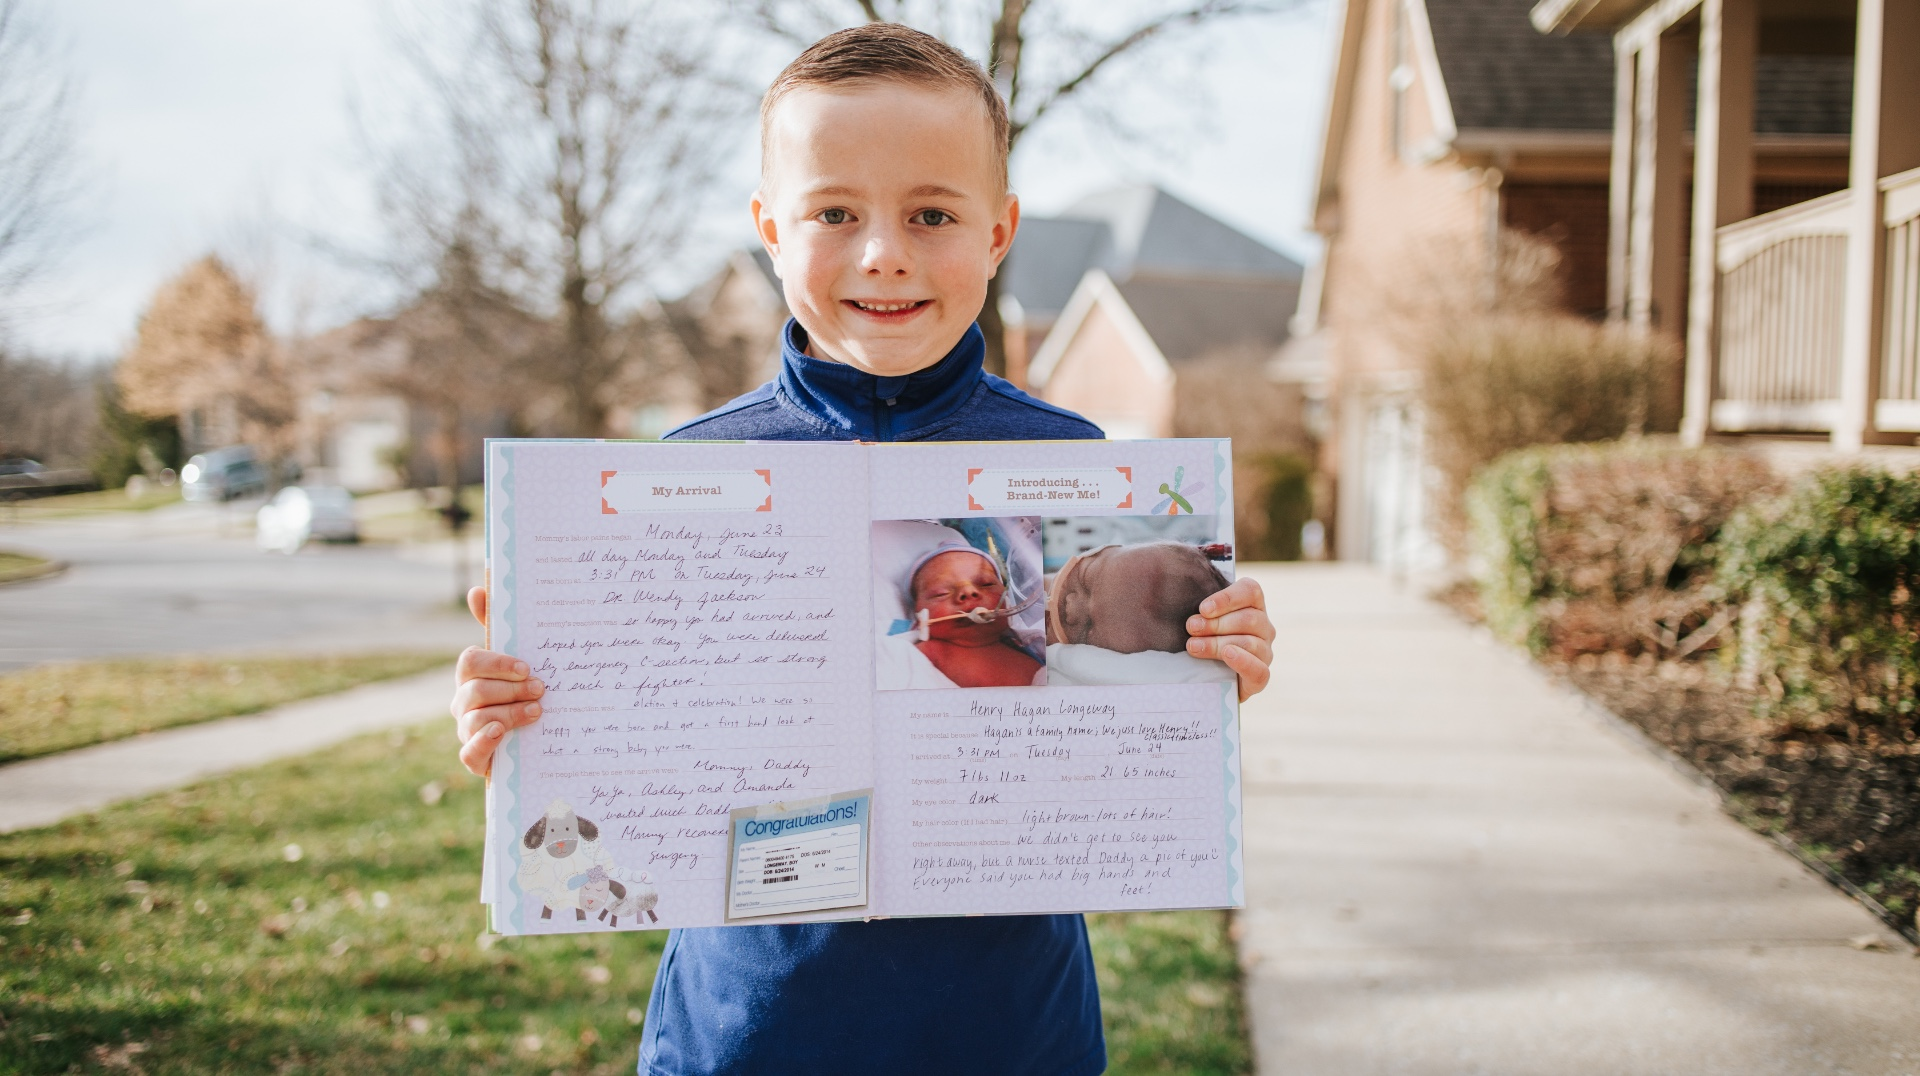 Henry stands outside with a big smile as he holds up a diary with writings and images from his experience as a baby.